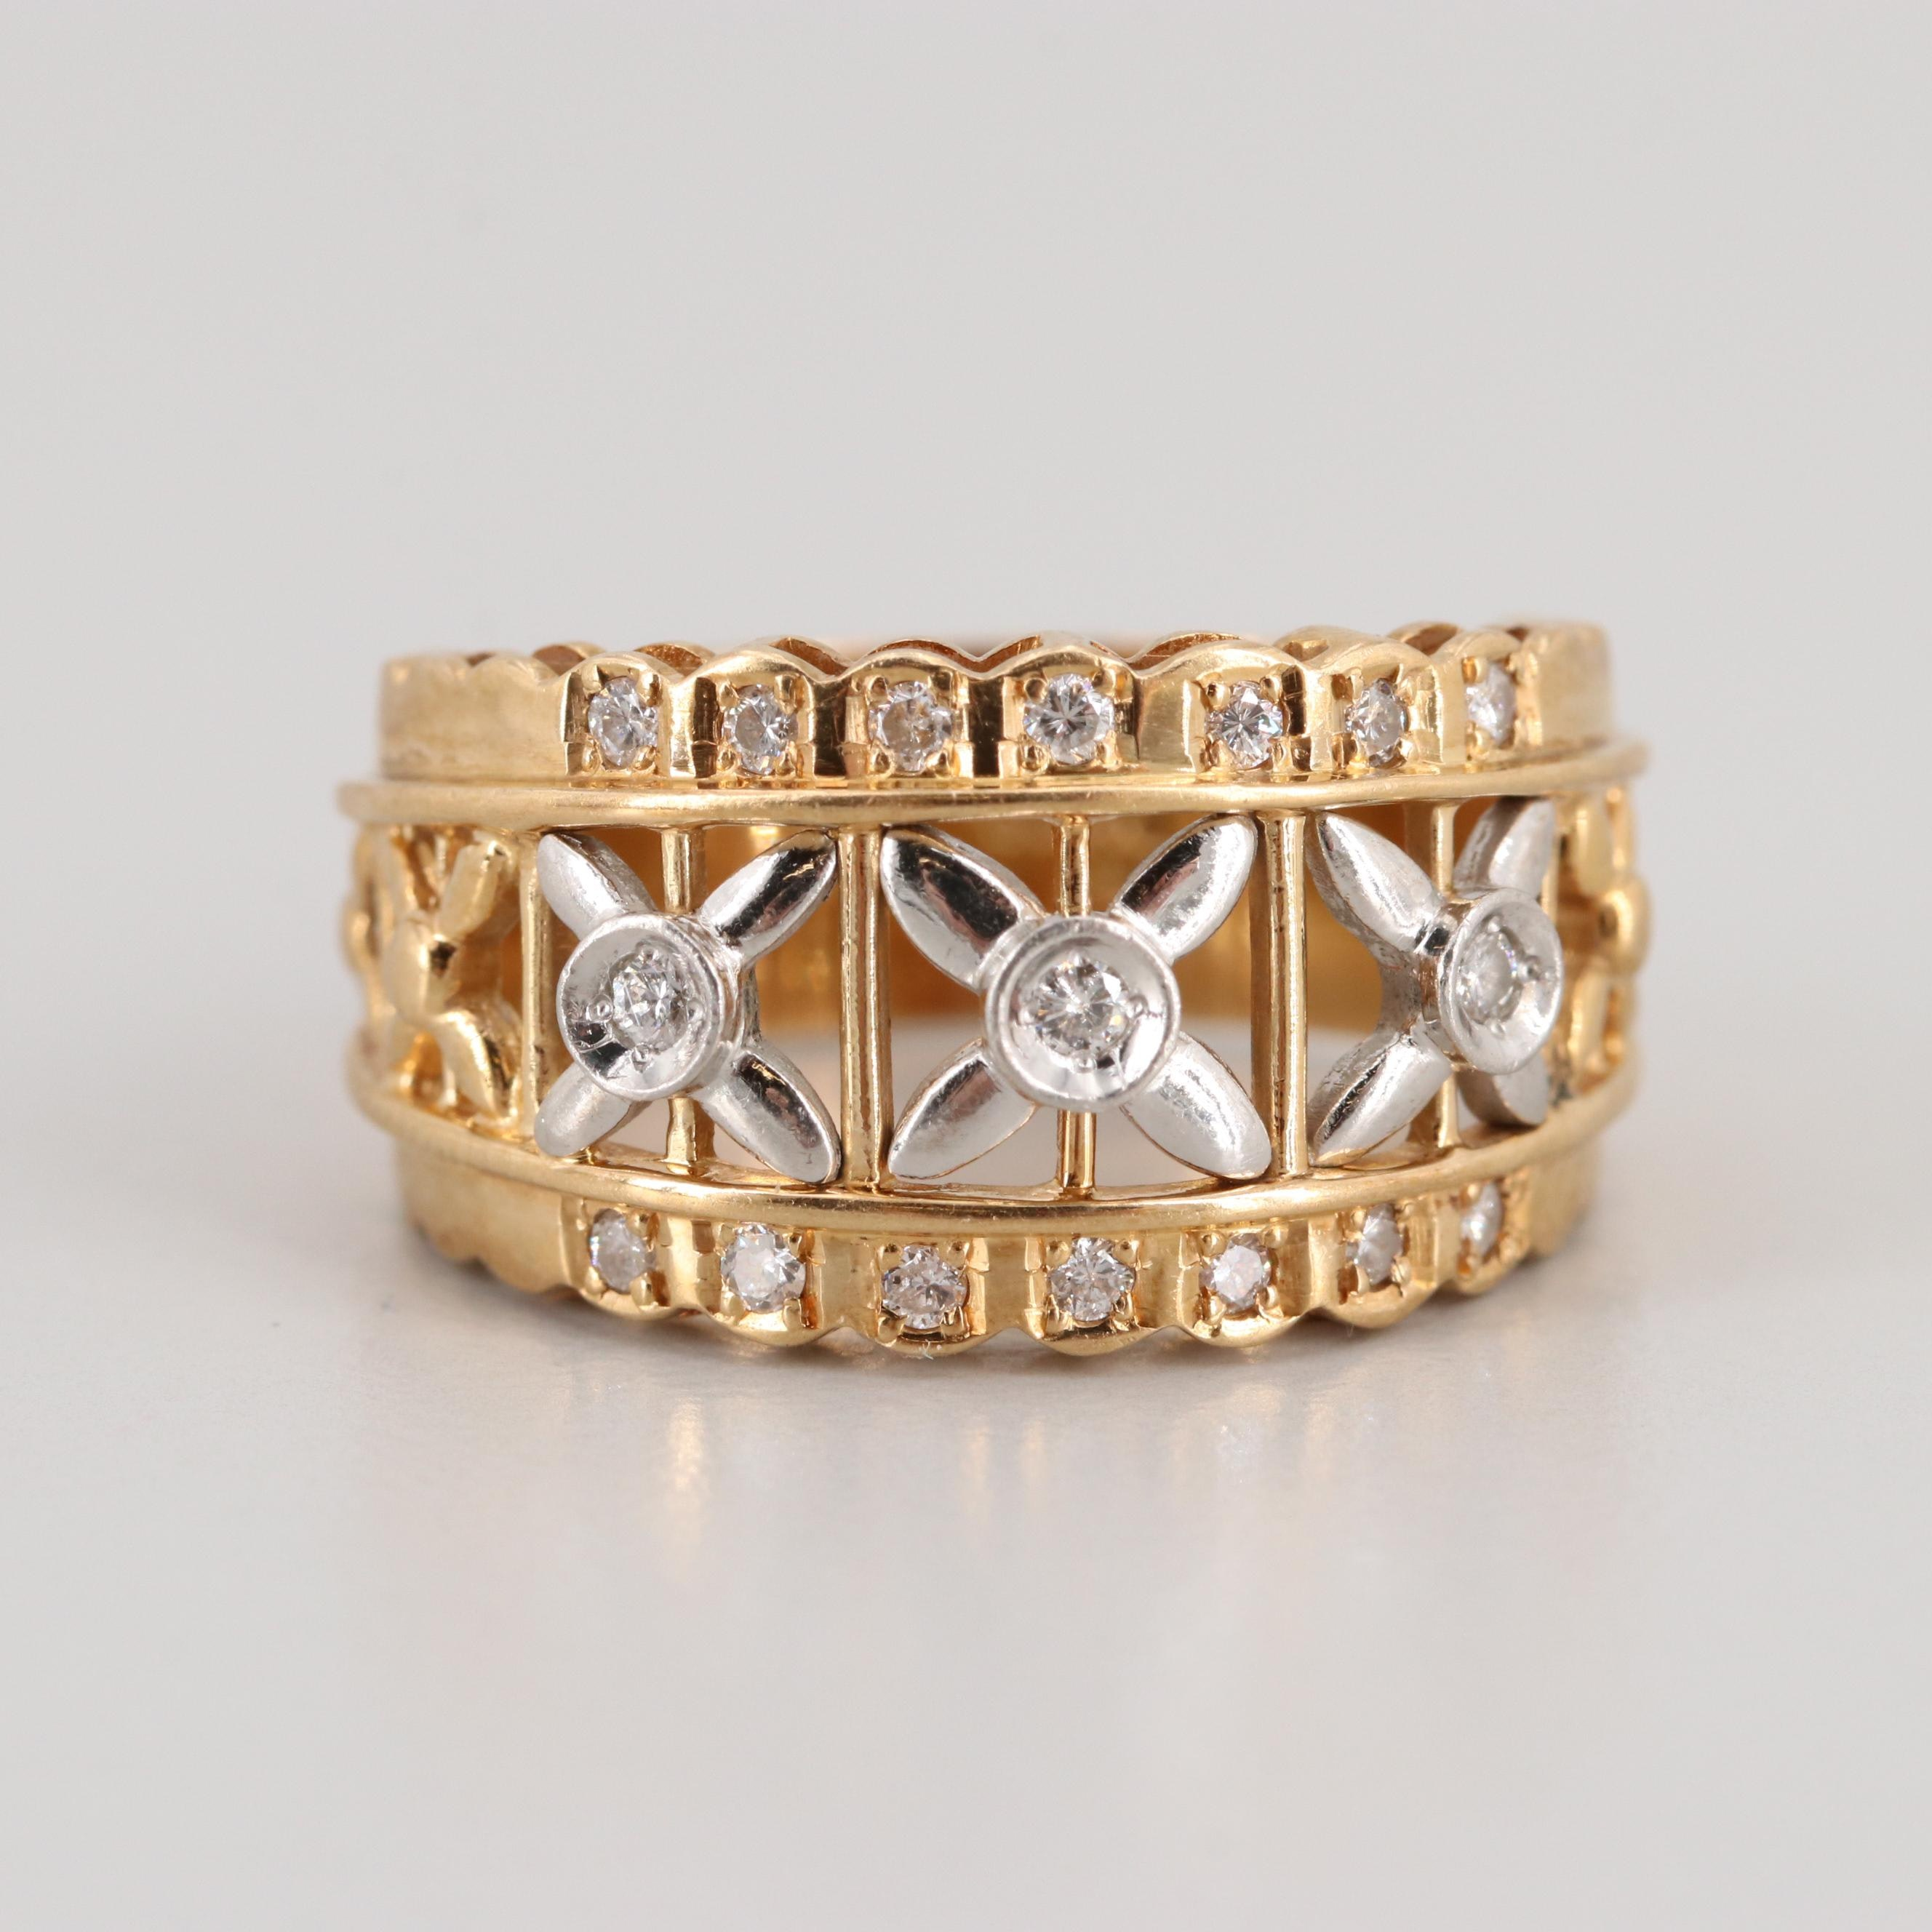 18K Yellow Gold Diamond Openwork Ring with Platinum Accents